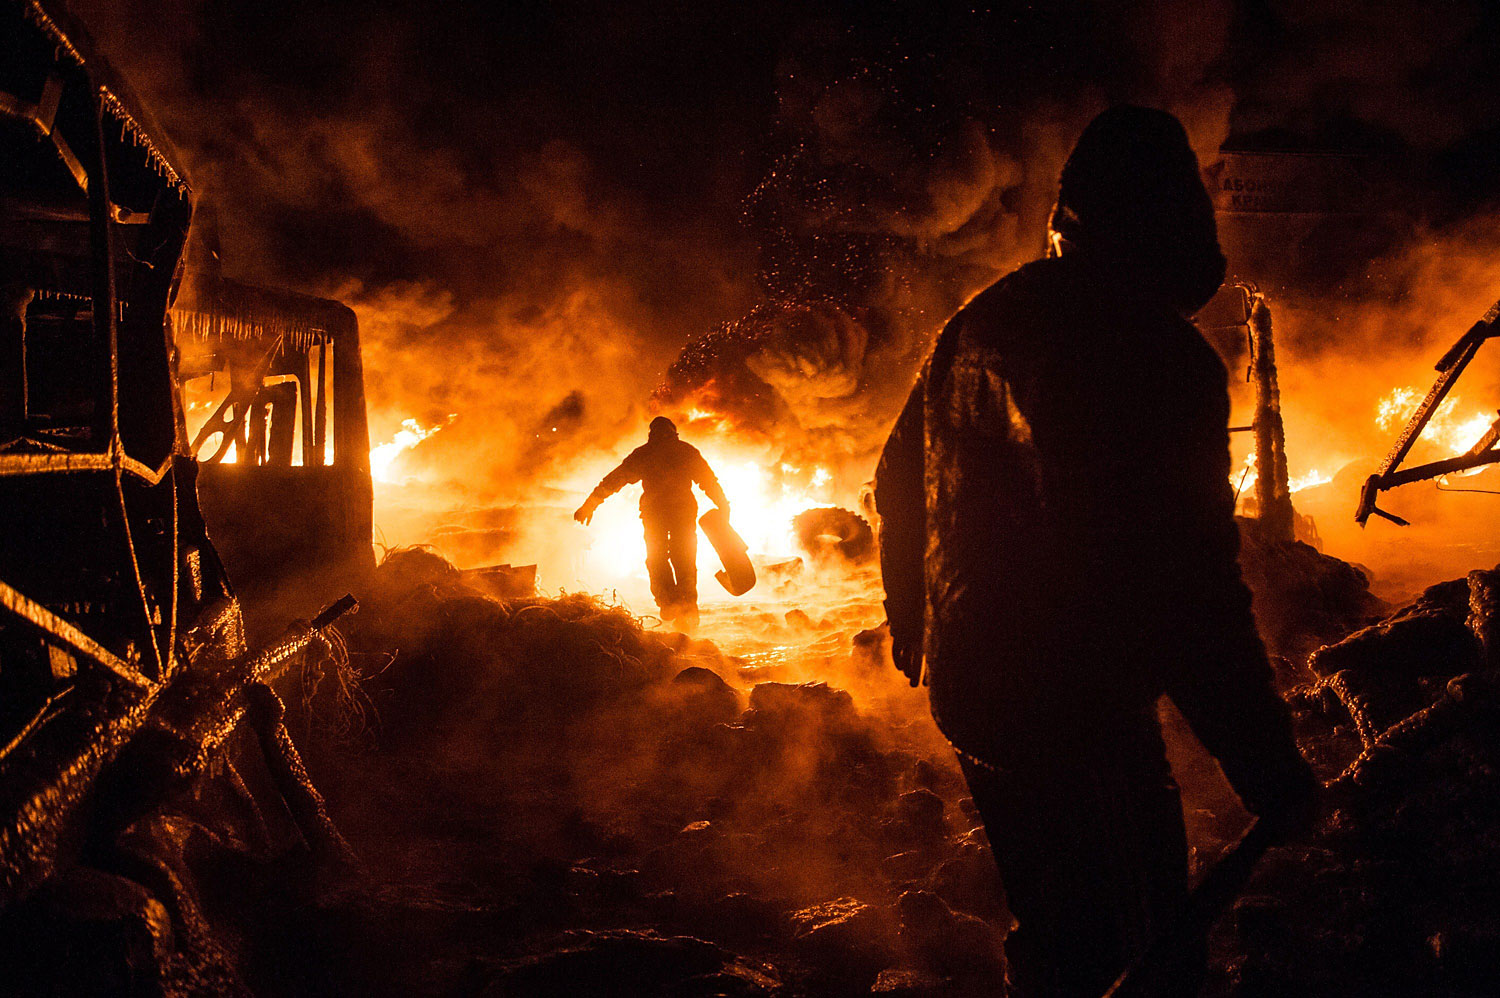 Ukrainian anti-government protesters walk past burning tyres during clashes with riot police in central Kiev early on Jan. 25, 2014.